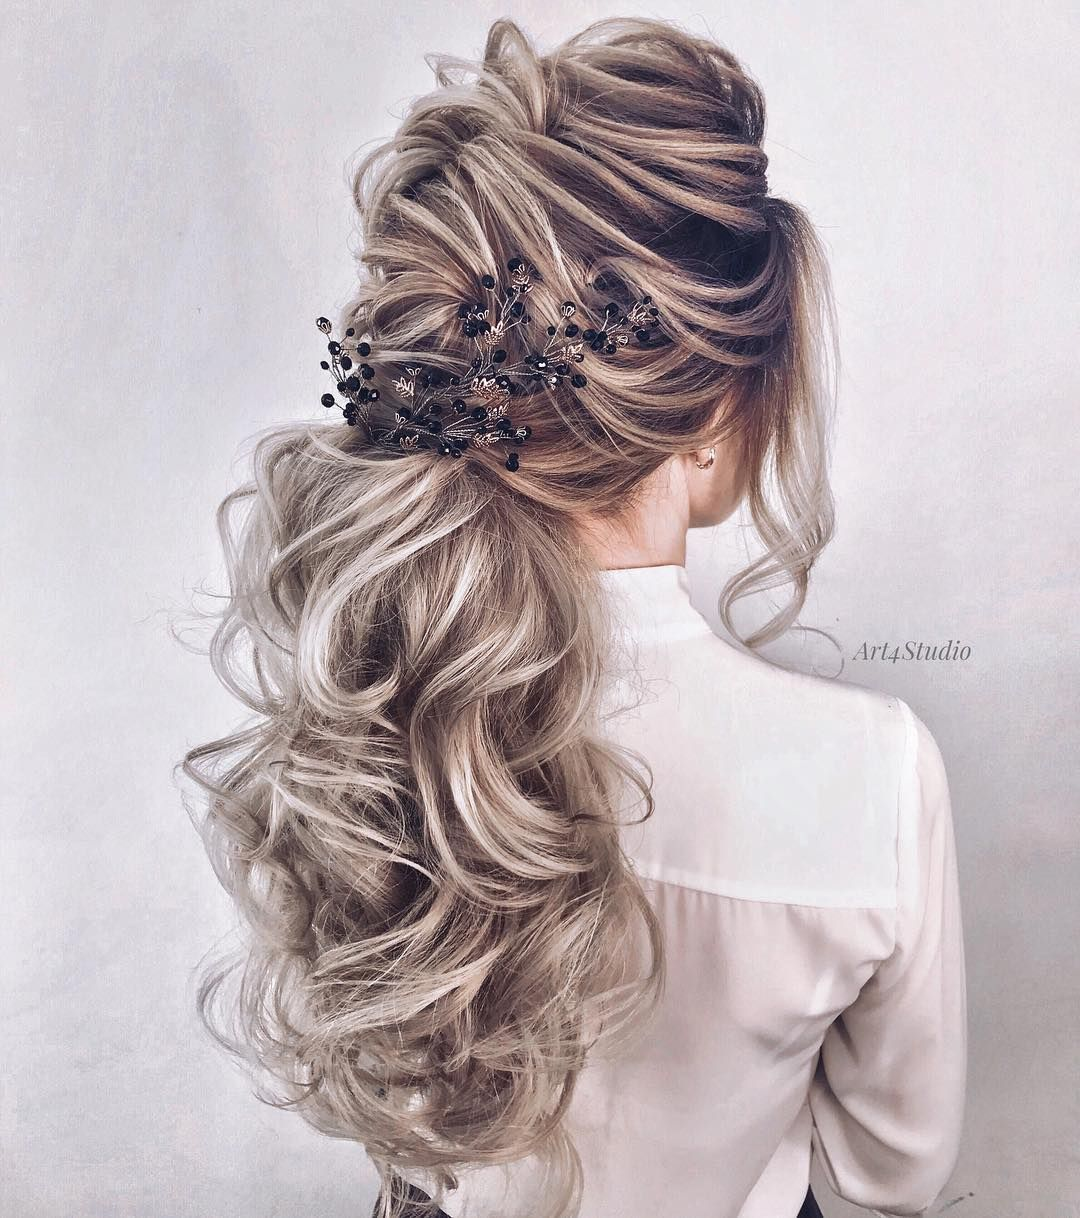 Best Long Wedding Hairstyles from Top Hairstylists Wedding